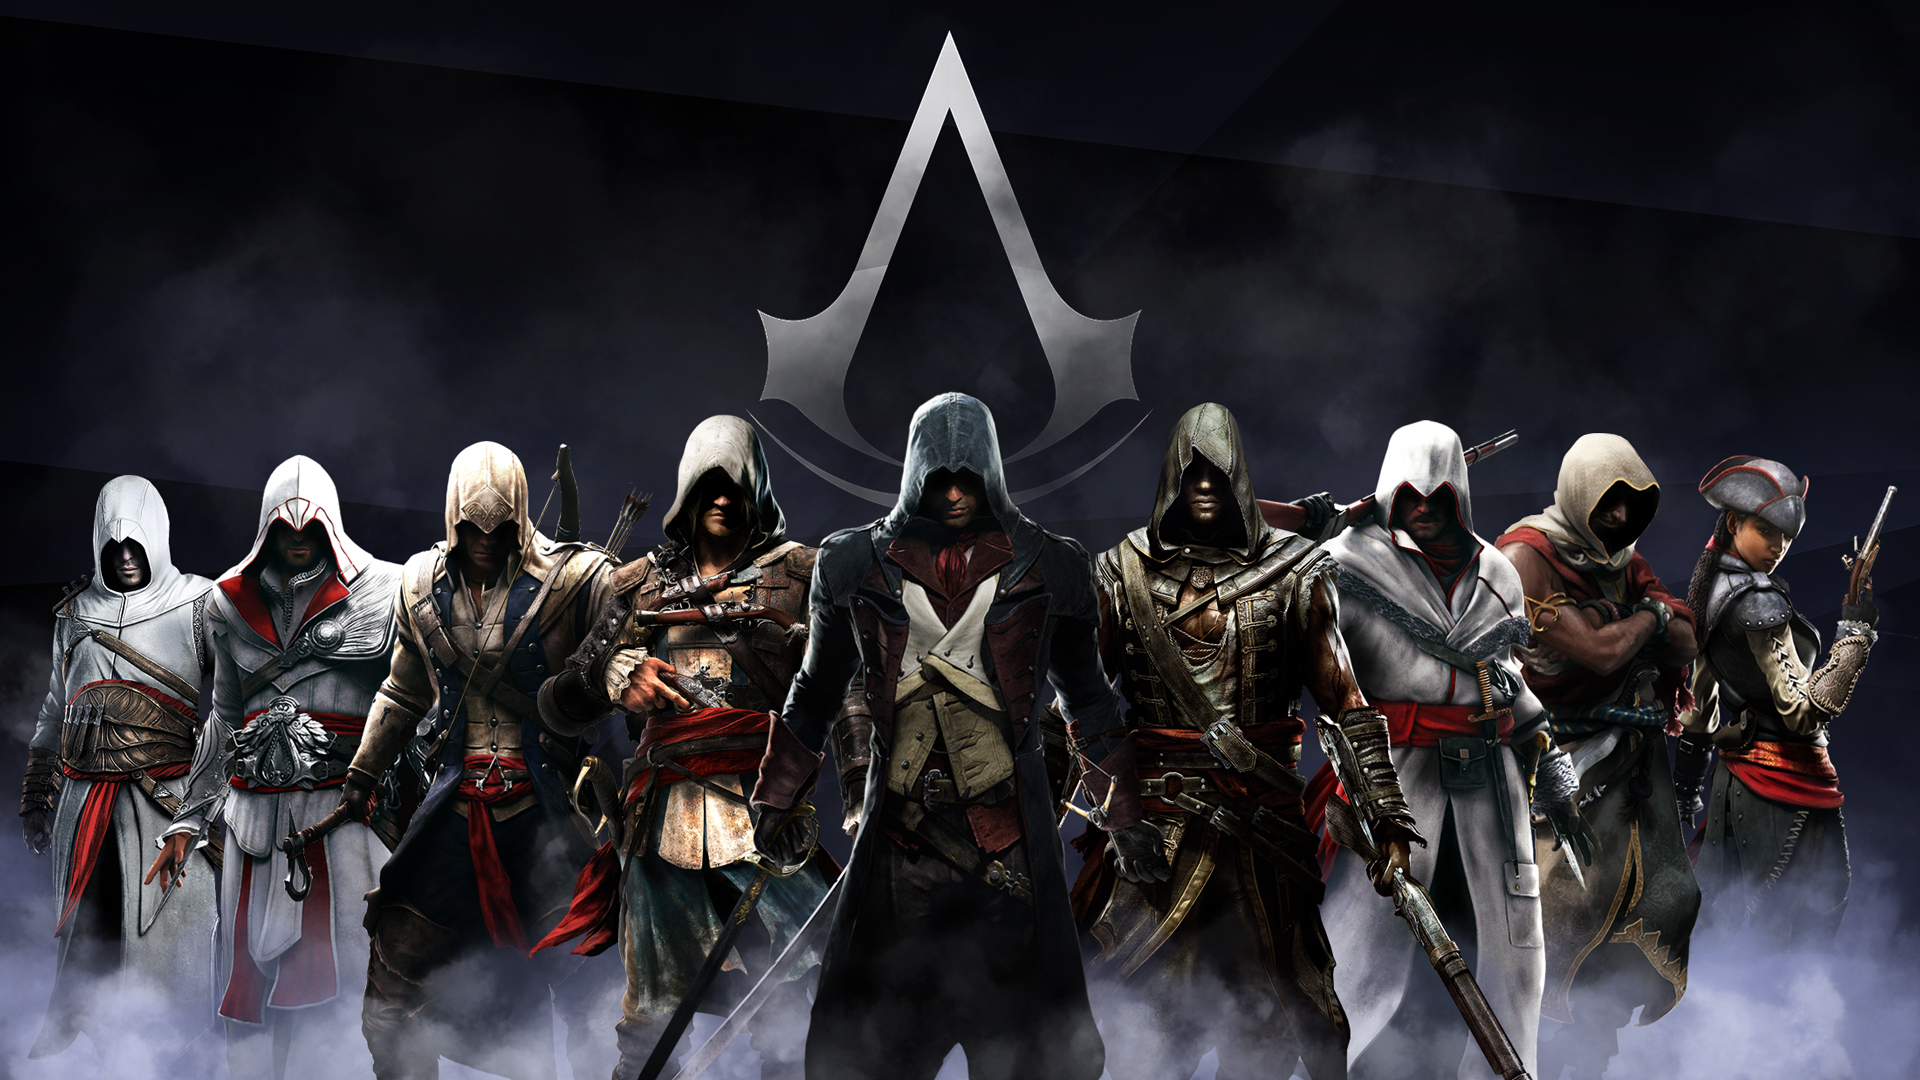 Assassin's Creed and characters